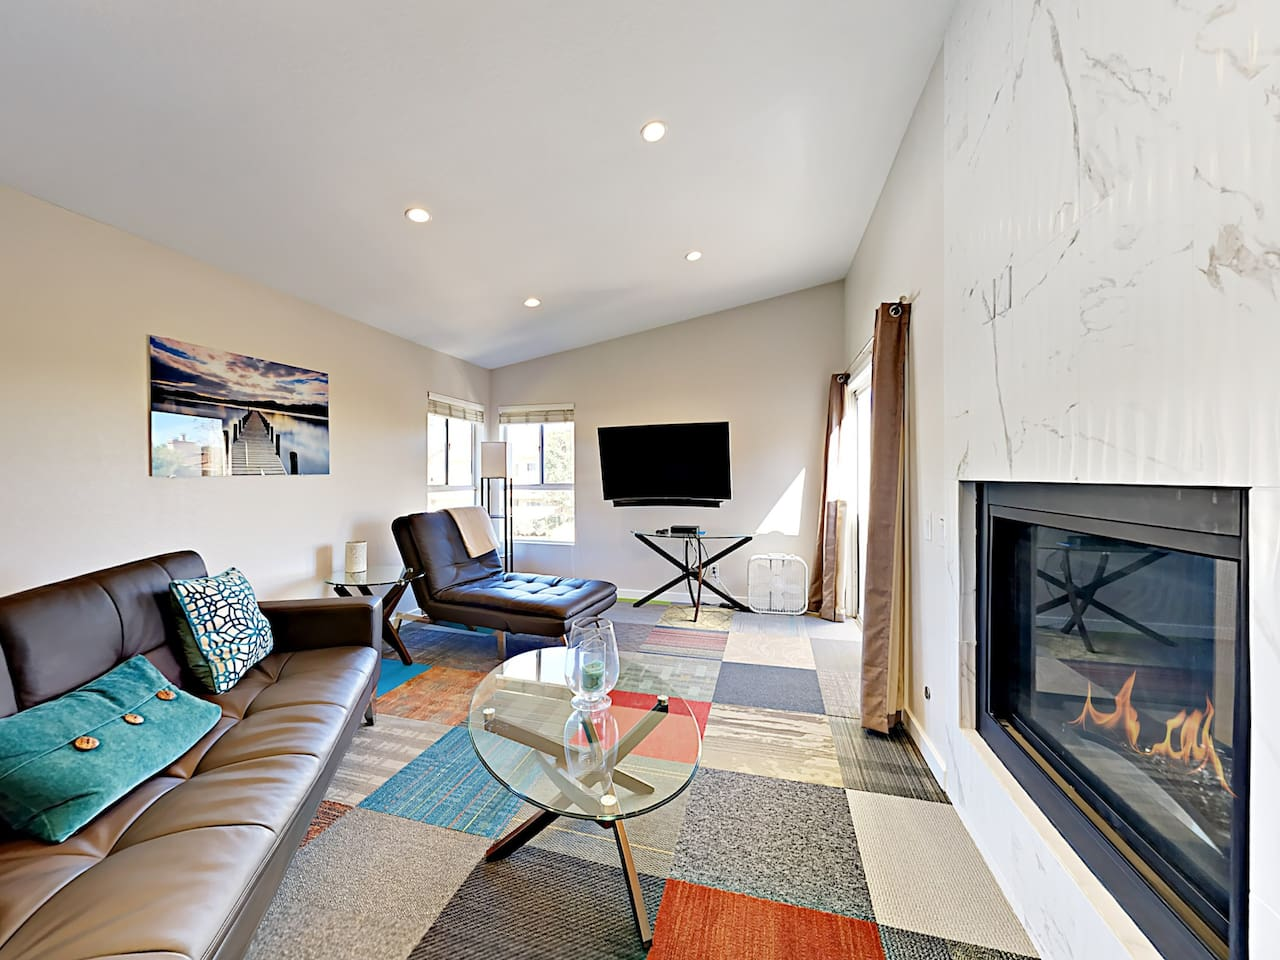 Welcome to Dana Point! This condo is professionally managed by TurnKey Vacation Rentals.